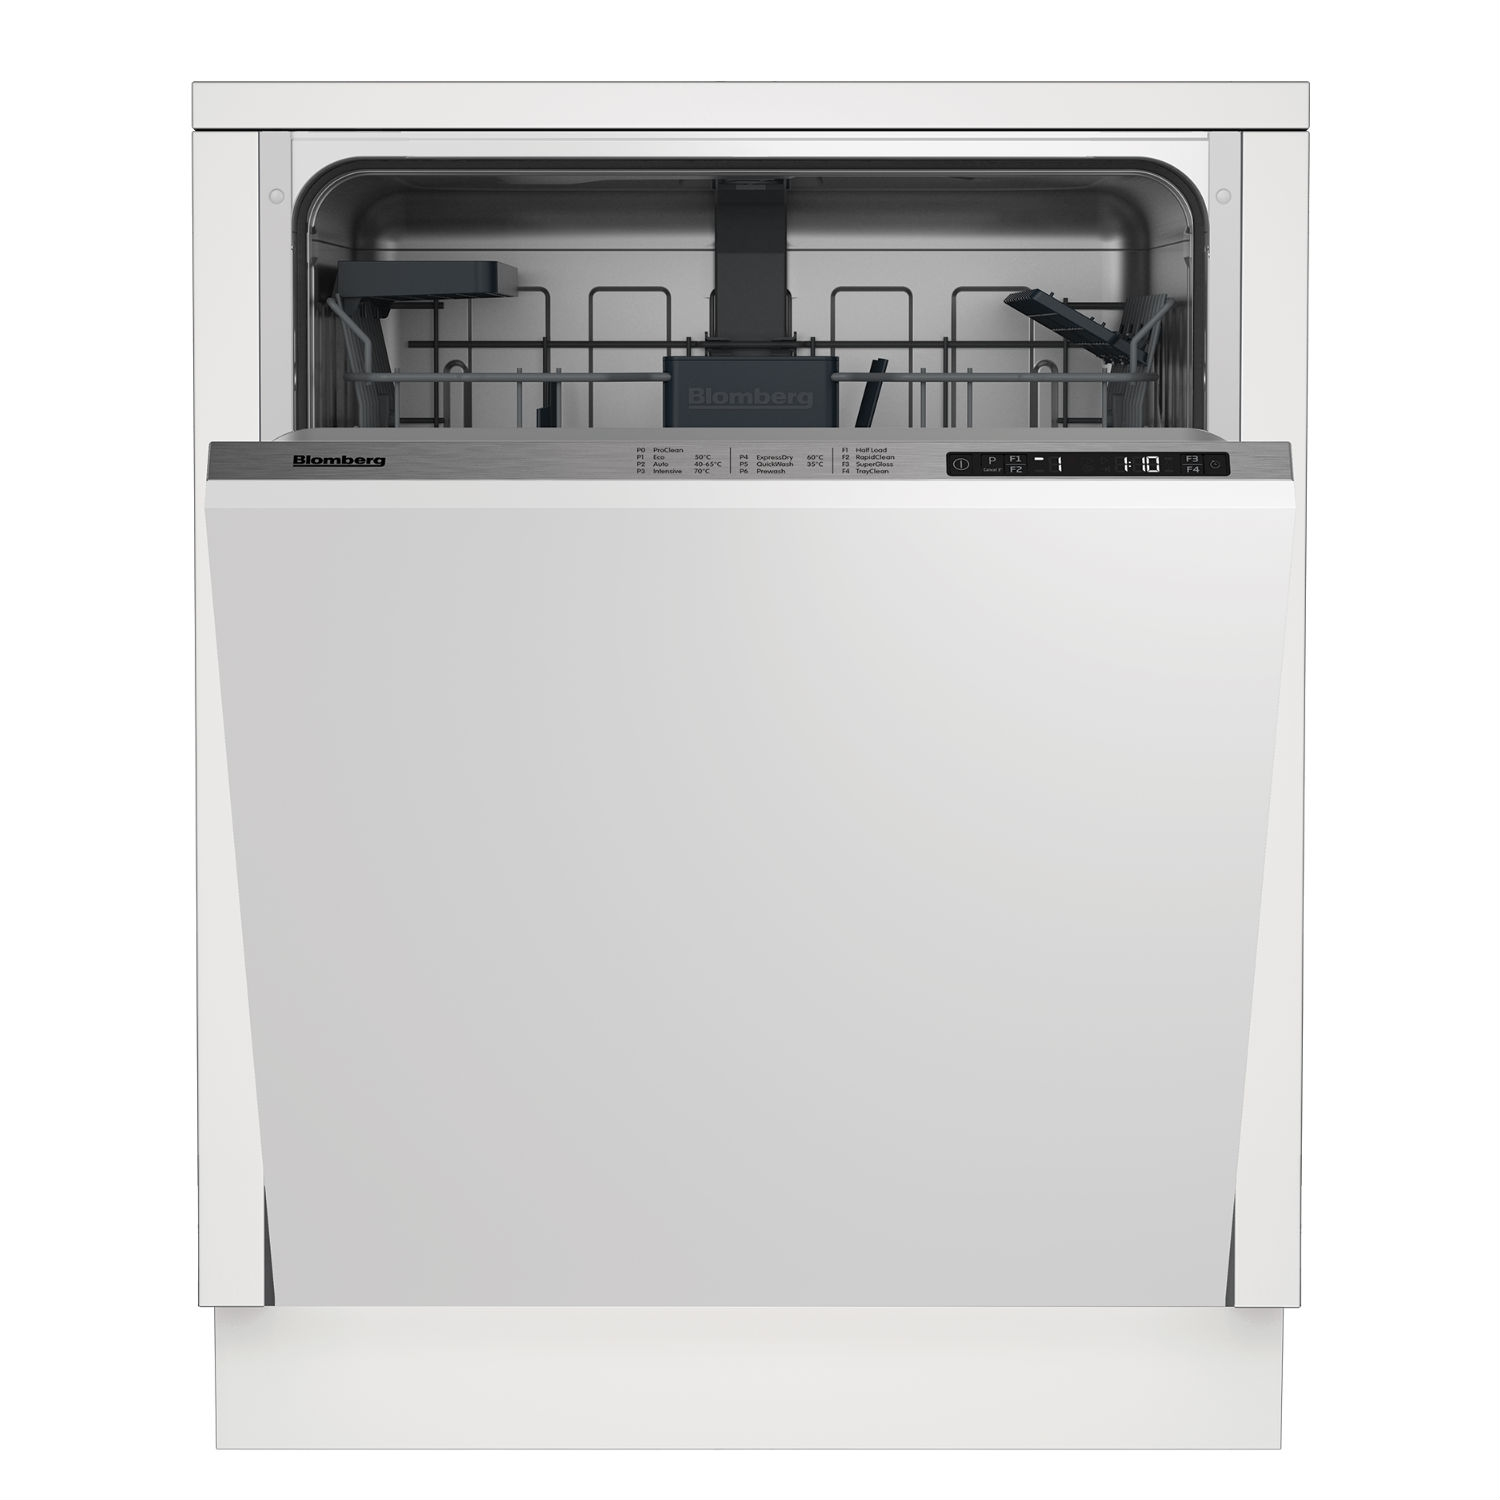 Blomberg 14 Place Settings Built In Dishwasher - A+ Rated - 0